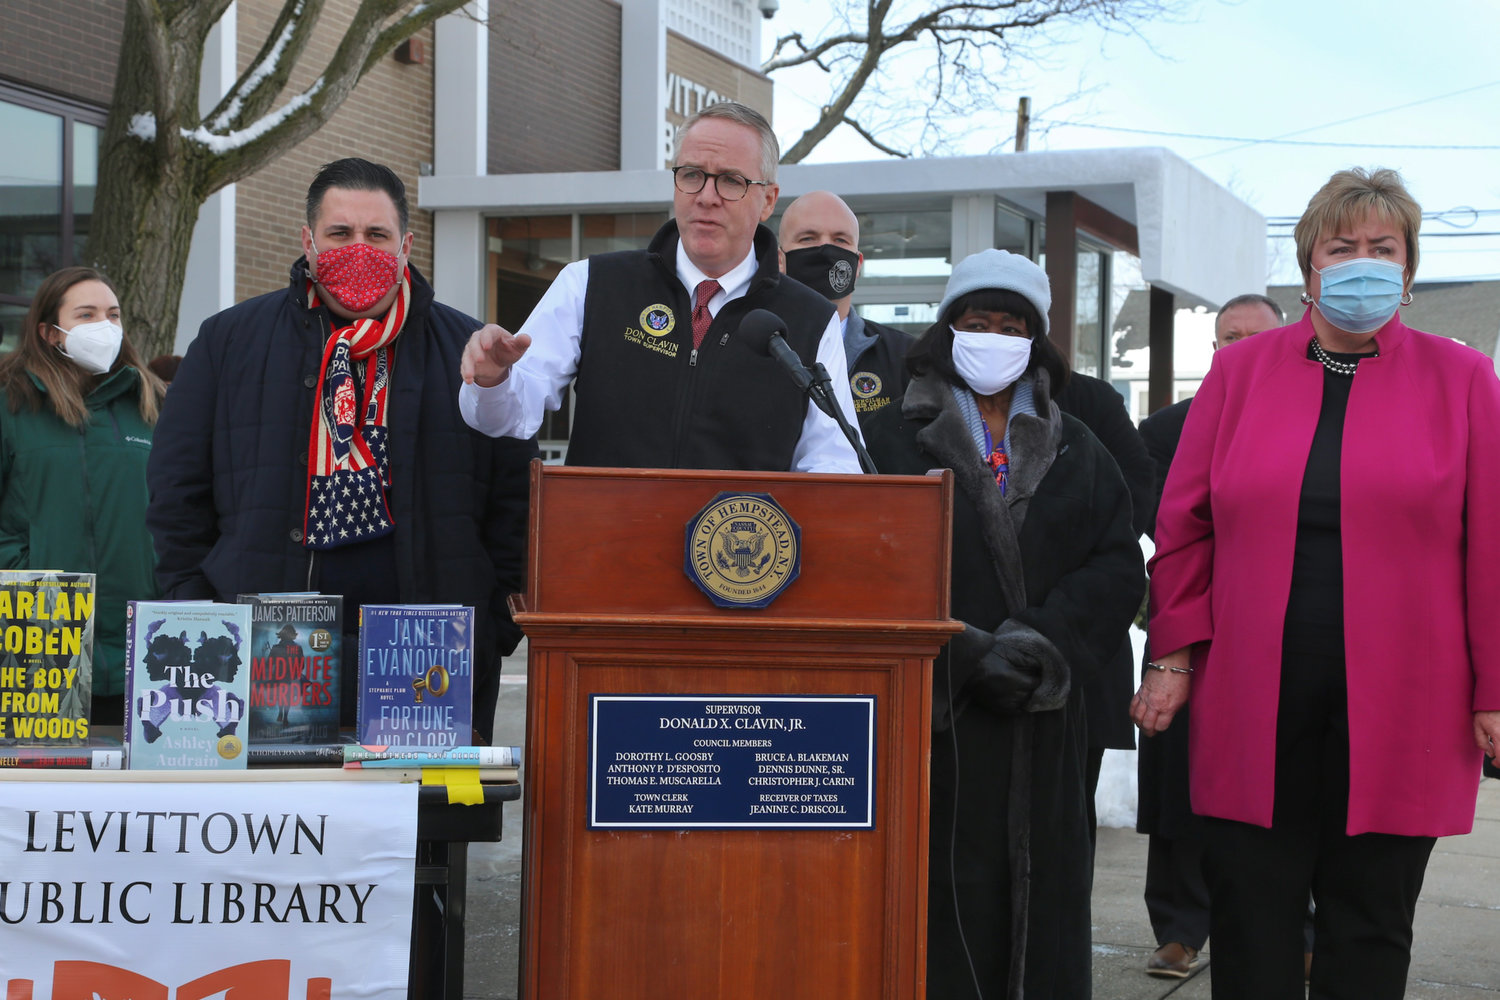 On Feb. 10, Hempstead Town Supervisor Donald Clavin announced that the town would direct more than $340,000 of federal CARES Act funding to support a number of libraries in the township.